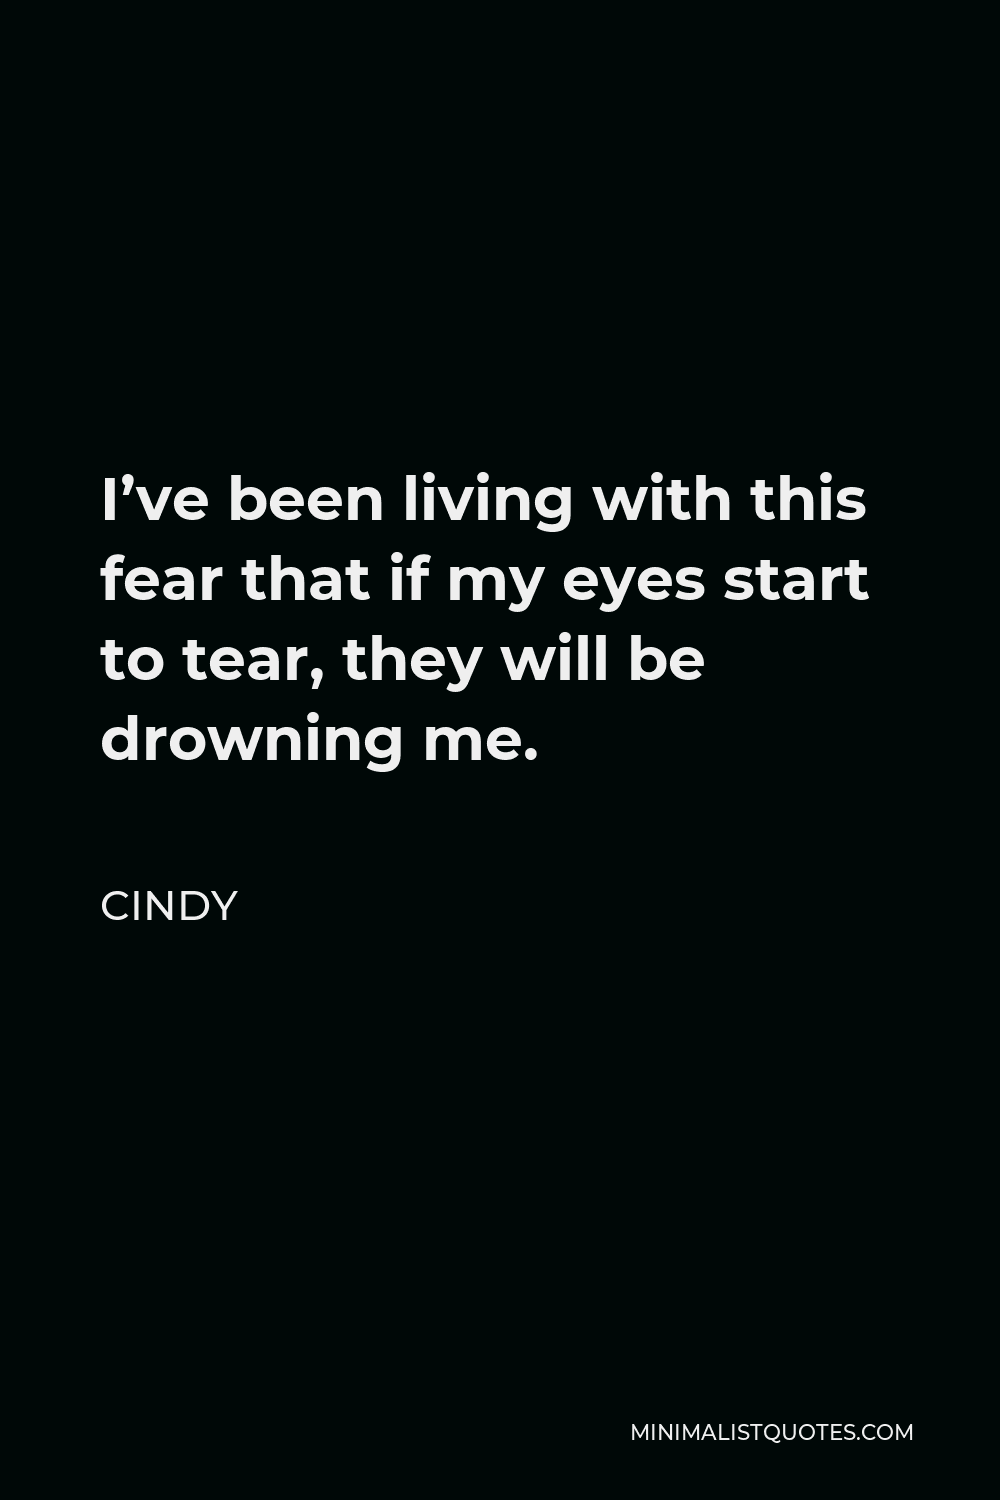 Cindy Quote - I've been living with this fear that if my eyes start to tear, they will be drowning me.